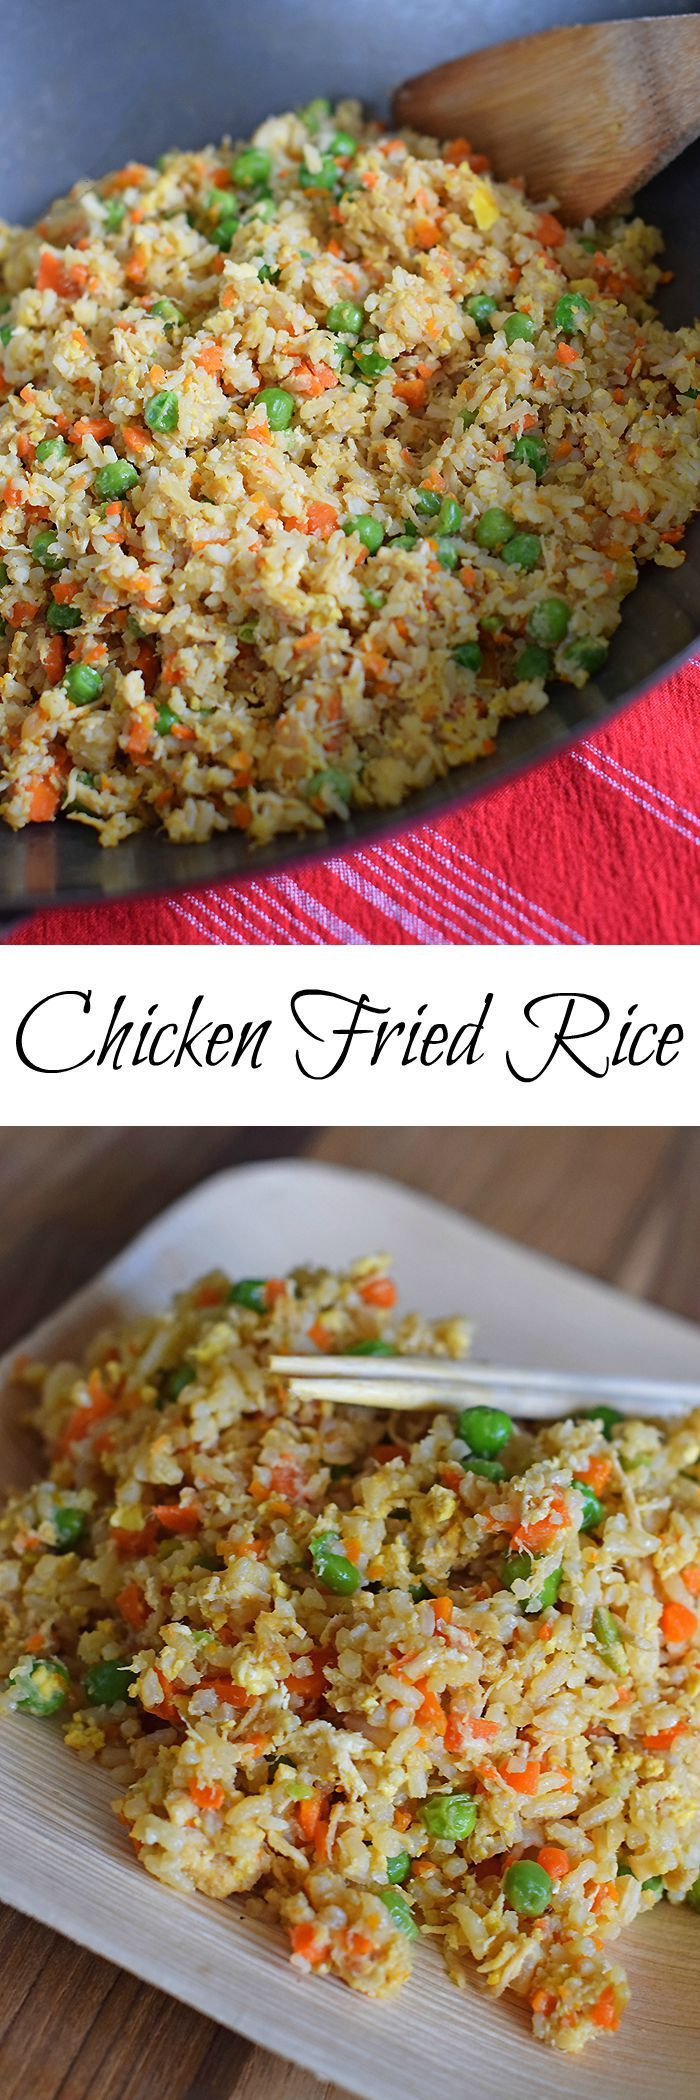 74 best fried rice biryani images on pinterest fried rice we love to make fried rice at home thanks to this delicious recipe so much better than takeout use leftovers to make chicken fried rice spring rolls ccuart Image collections